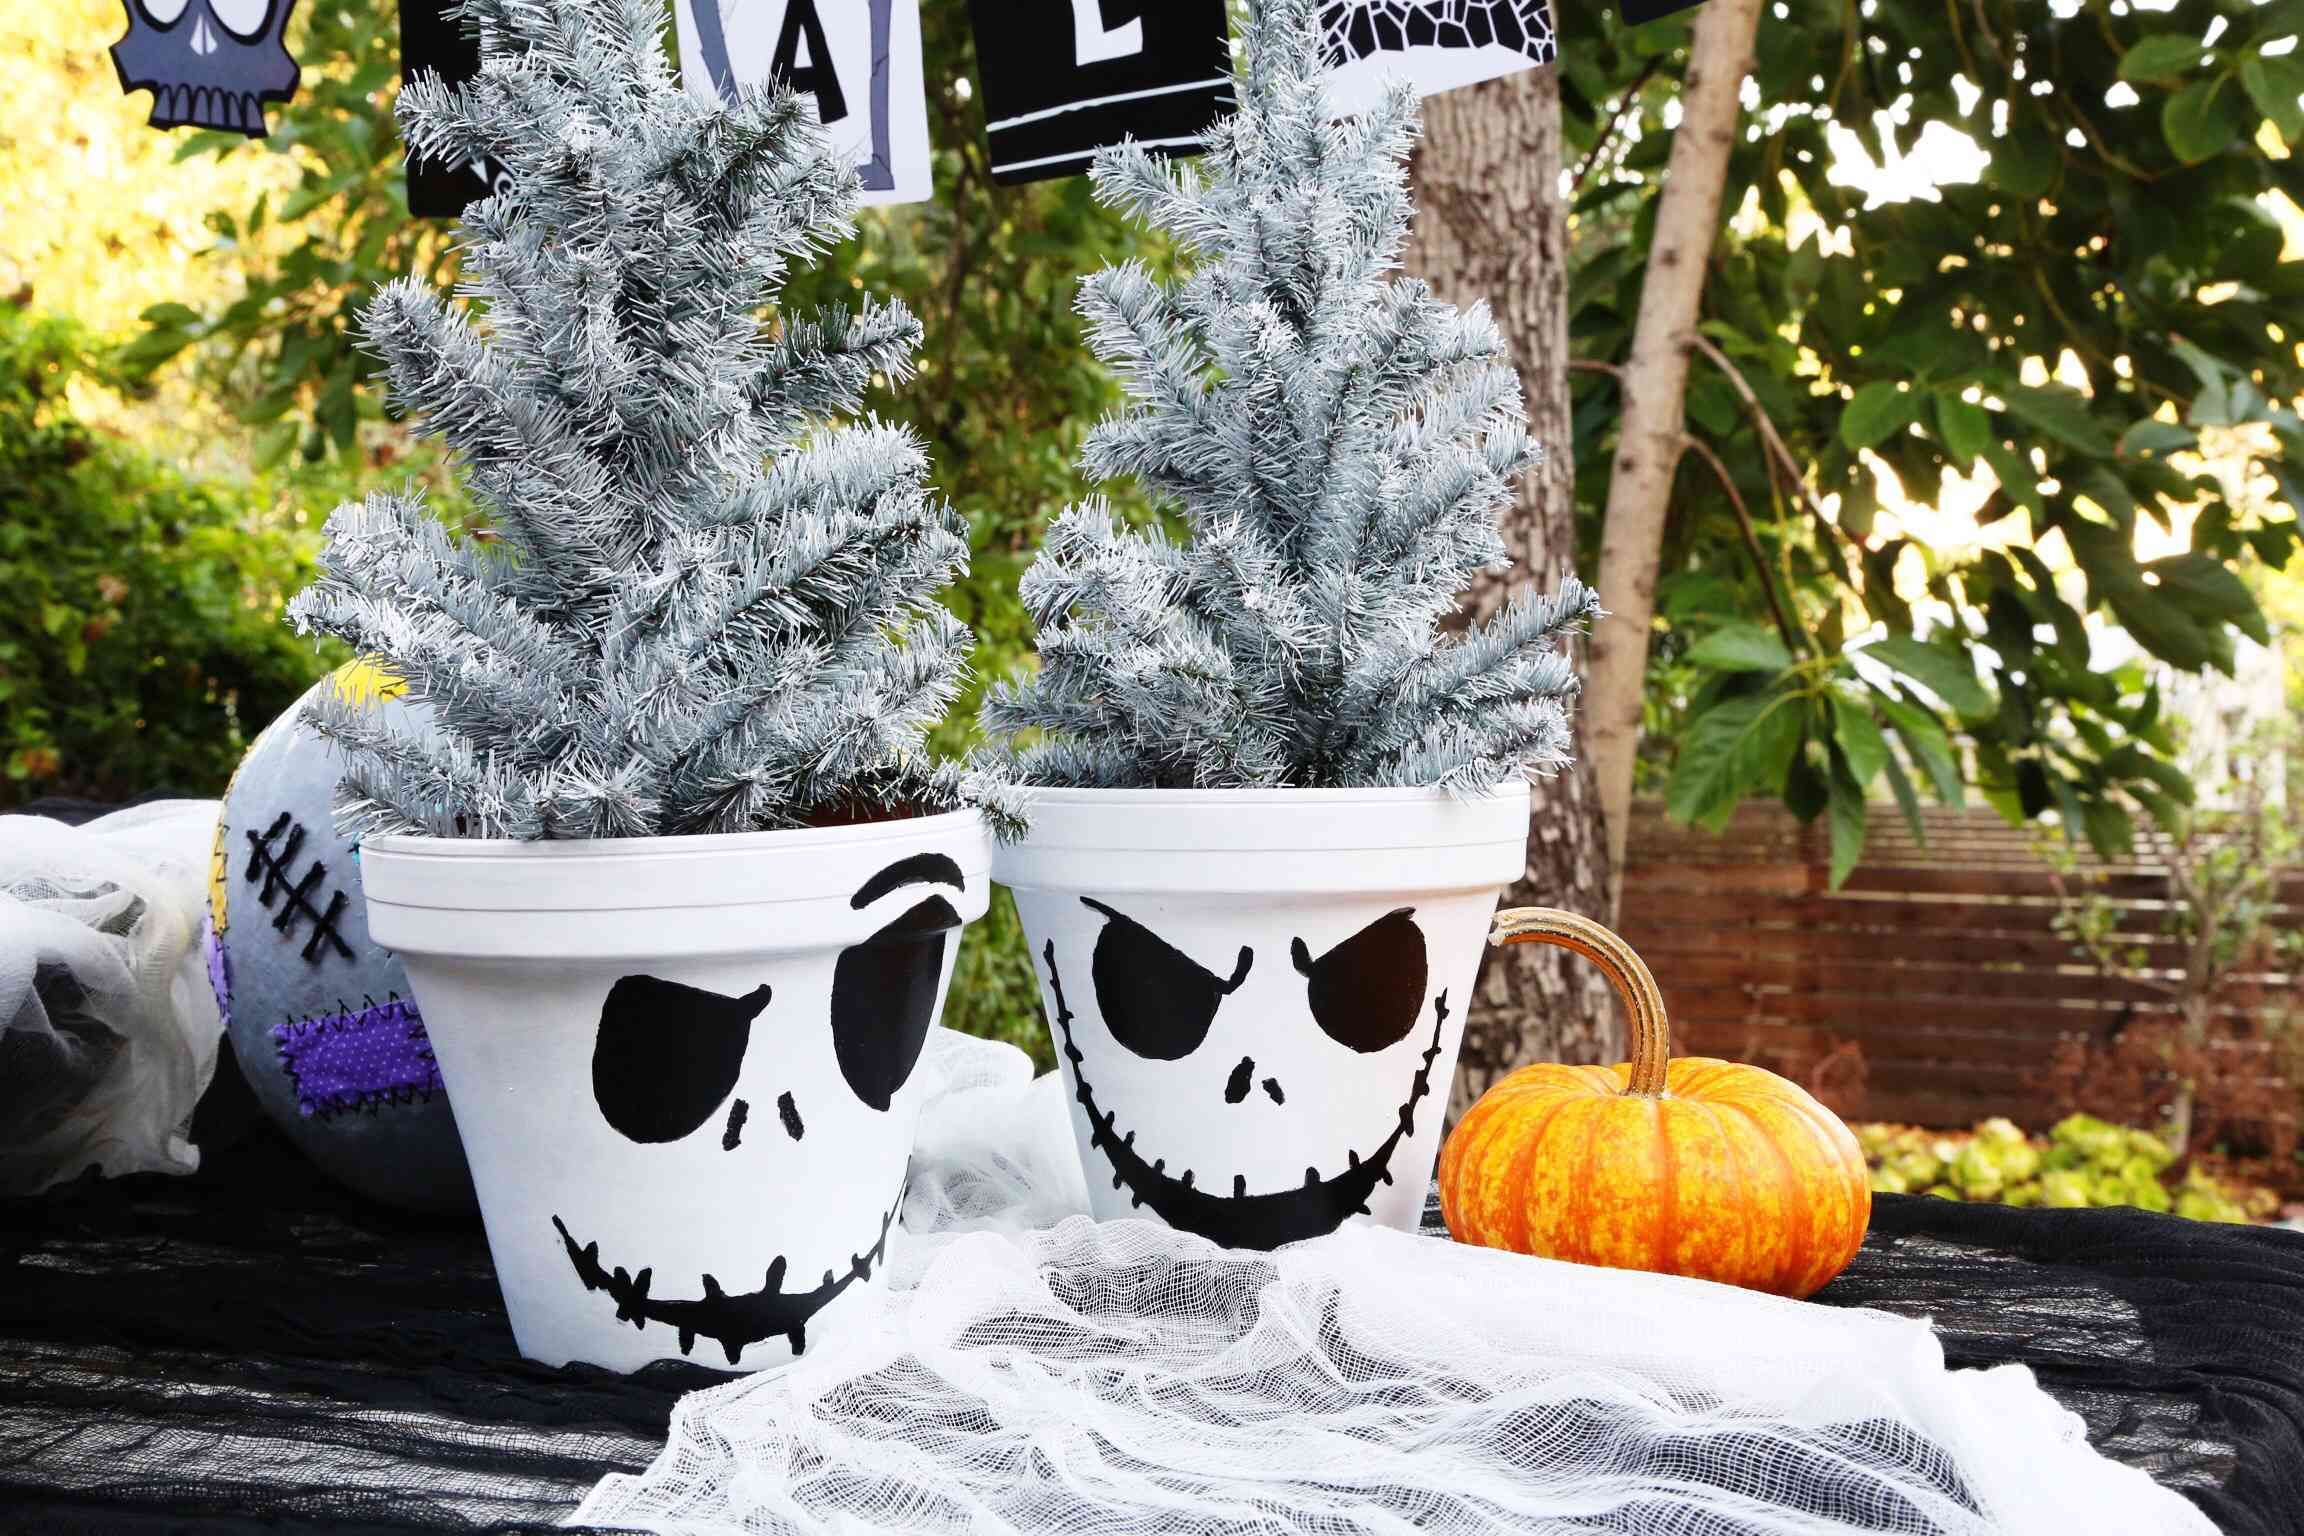 We couldn't resist posting some of our favorite Halloween planters - we hope you enjoy them too. ‪#‎drainsmart‬ ‪#‎containergardening‬ ‪#‎gardening‬ www.drain-smart.com